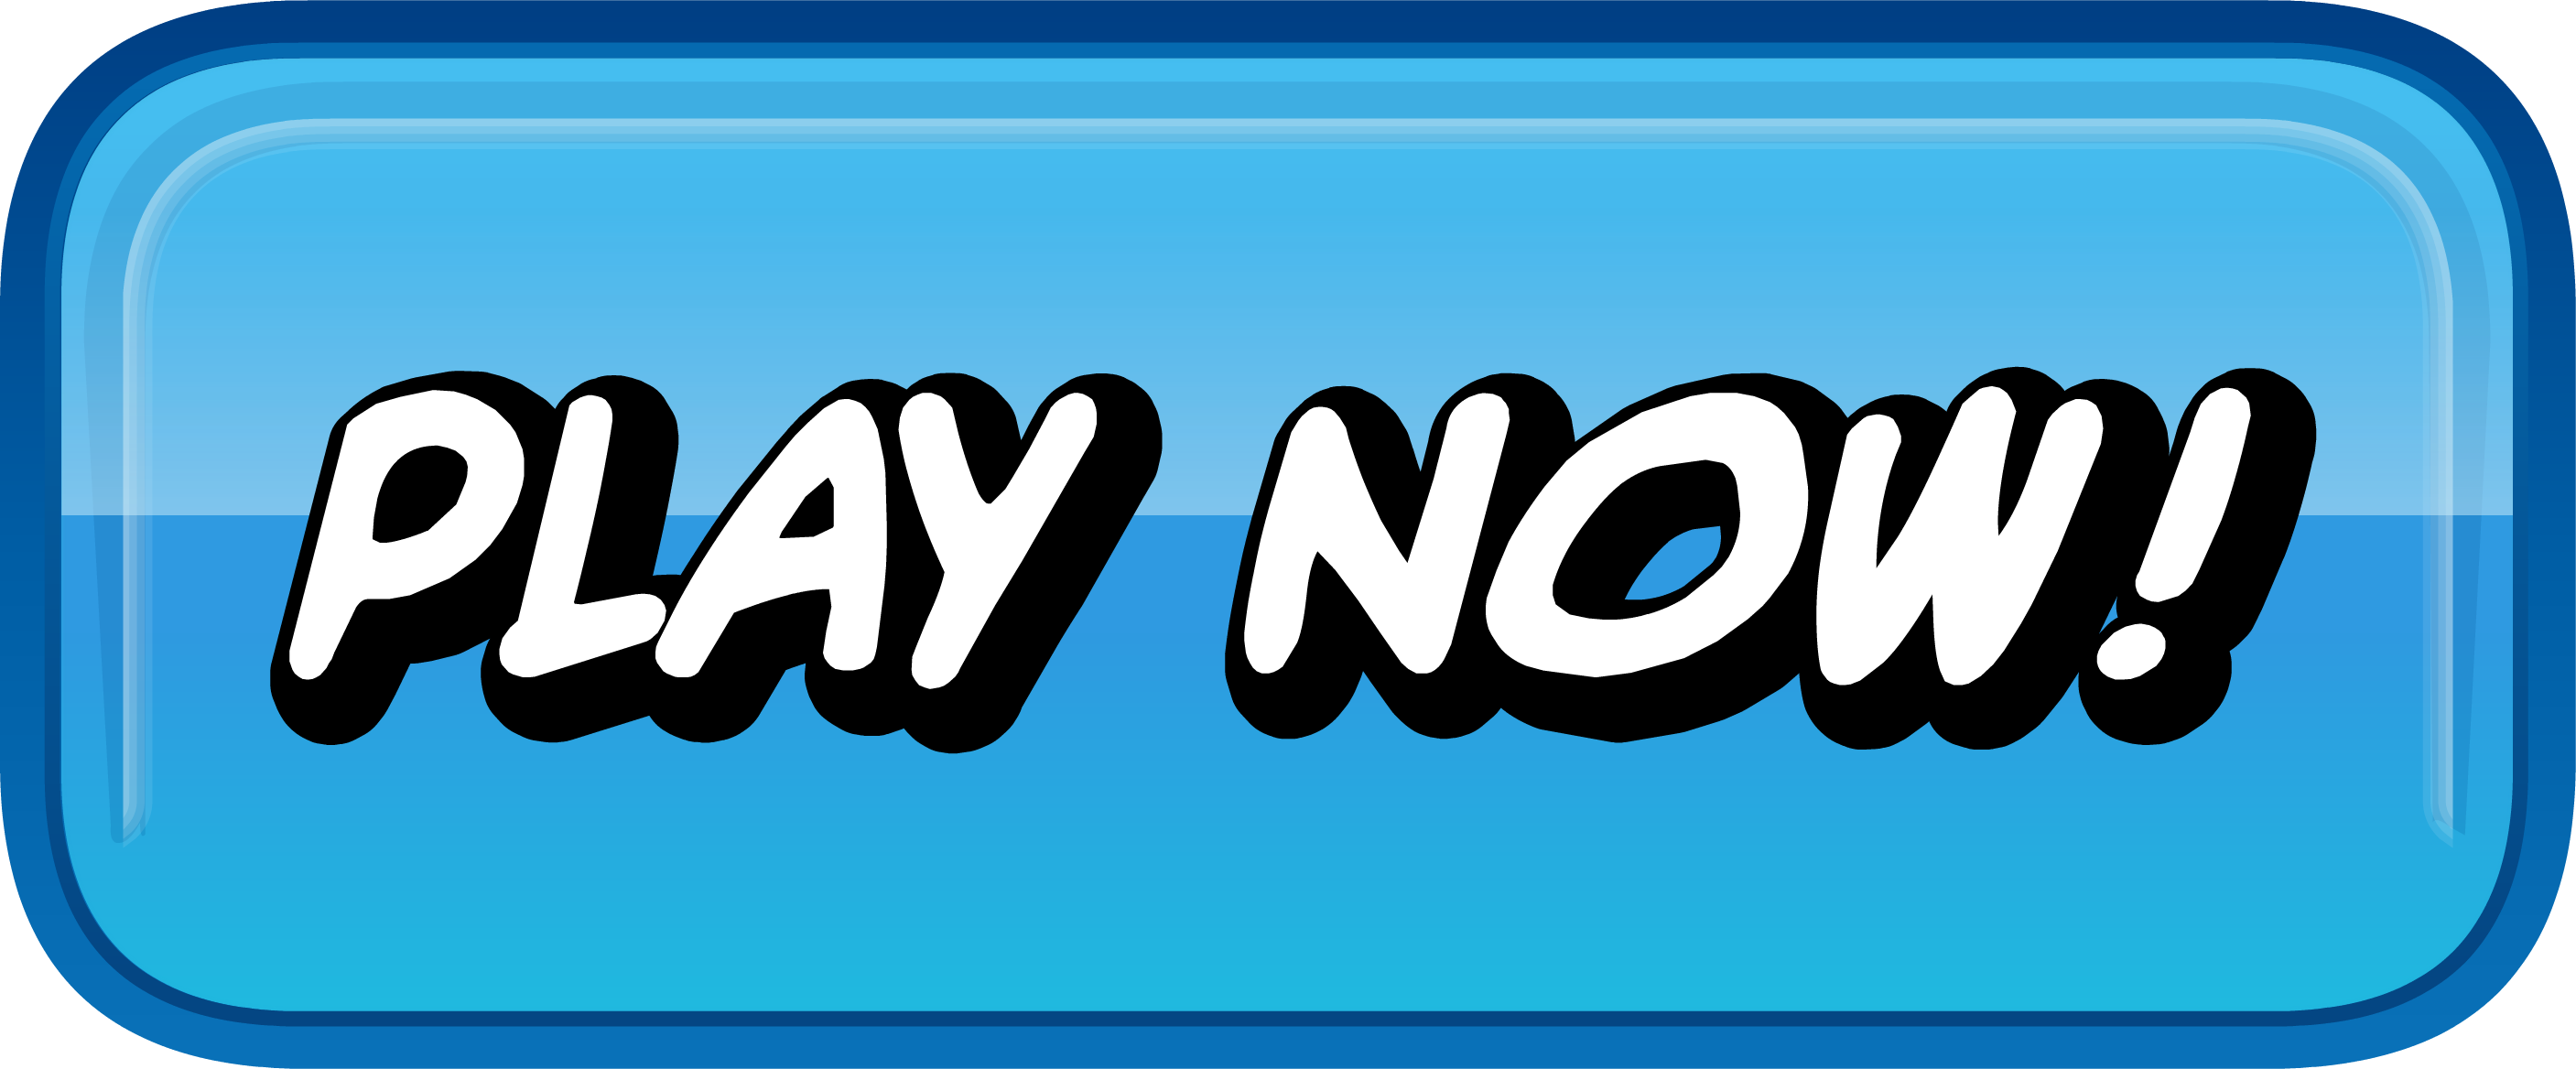 Freibier! Online Slot | PLAY NOW | StarGames Casino